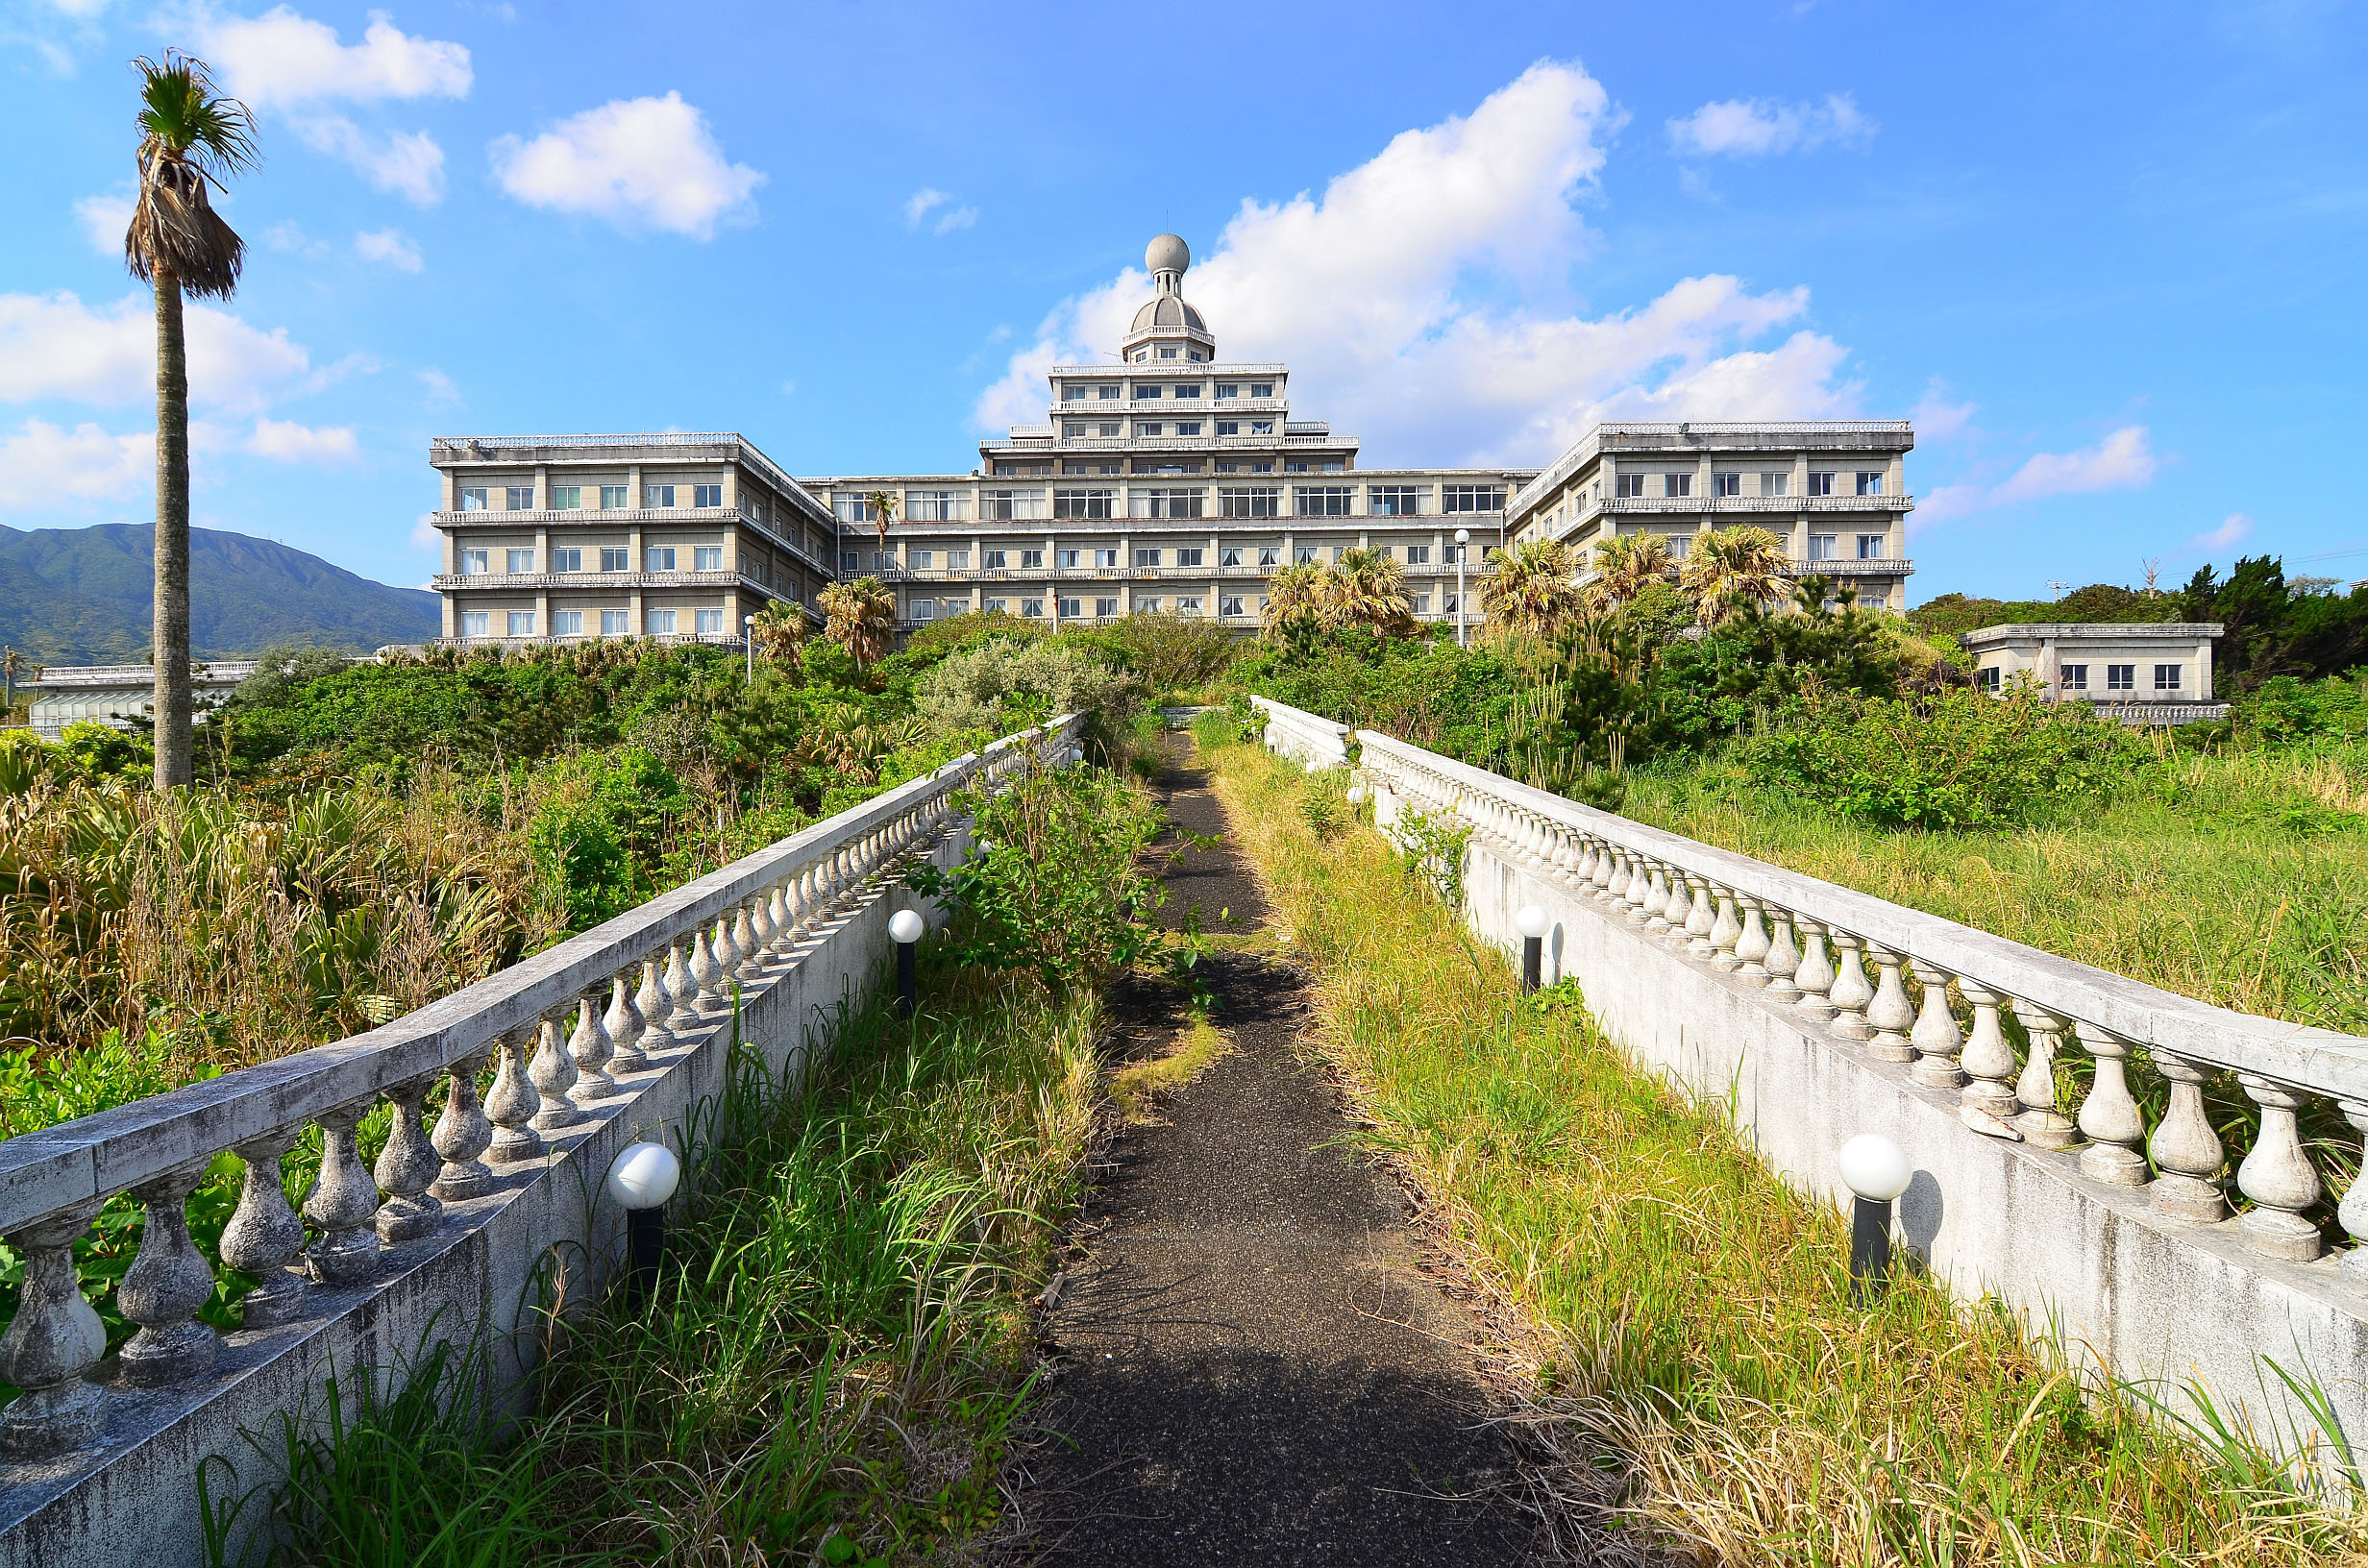 Hachijo Royal Hotel on the island of Hachijojima